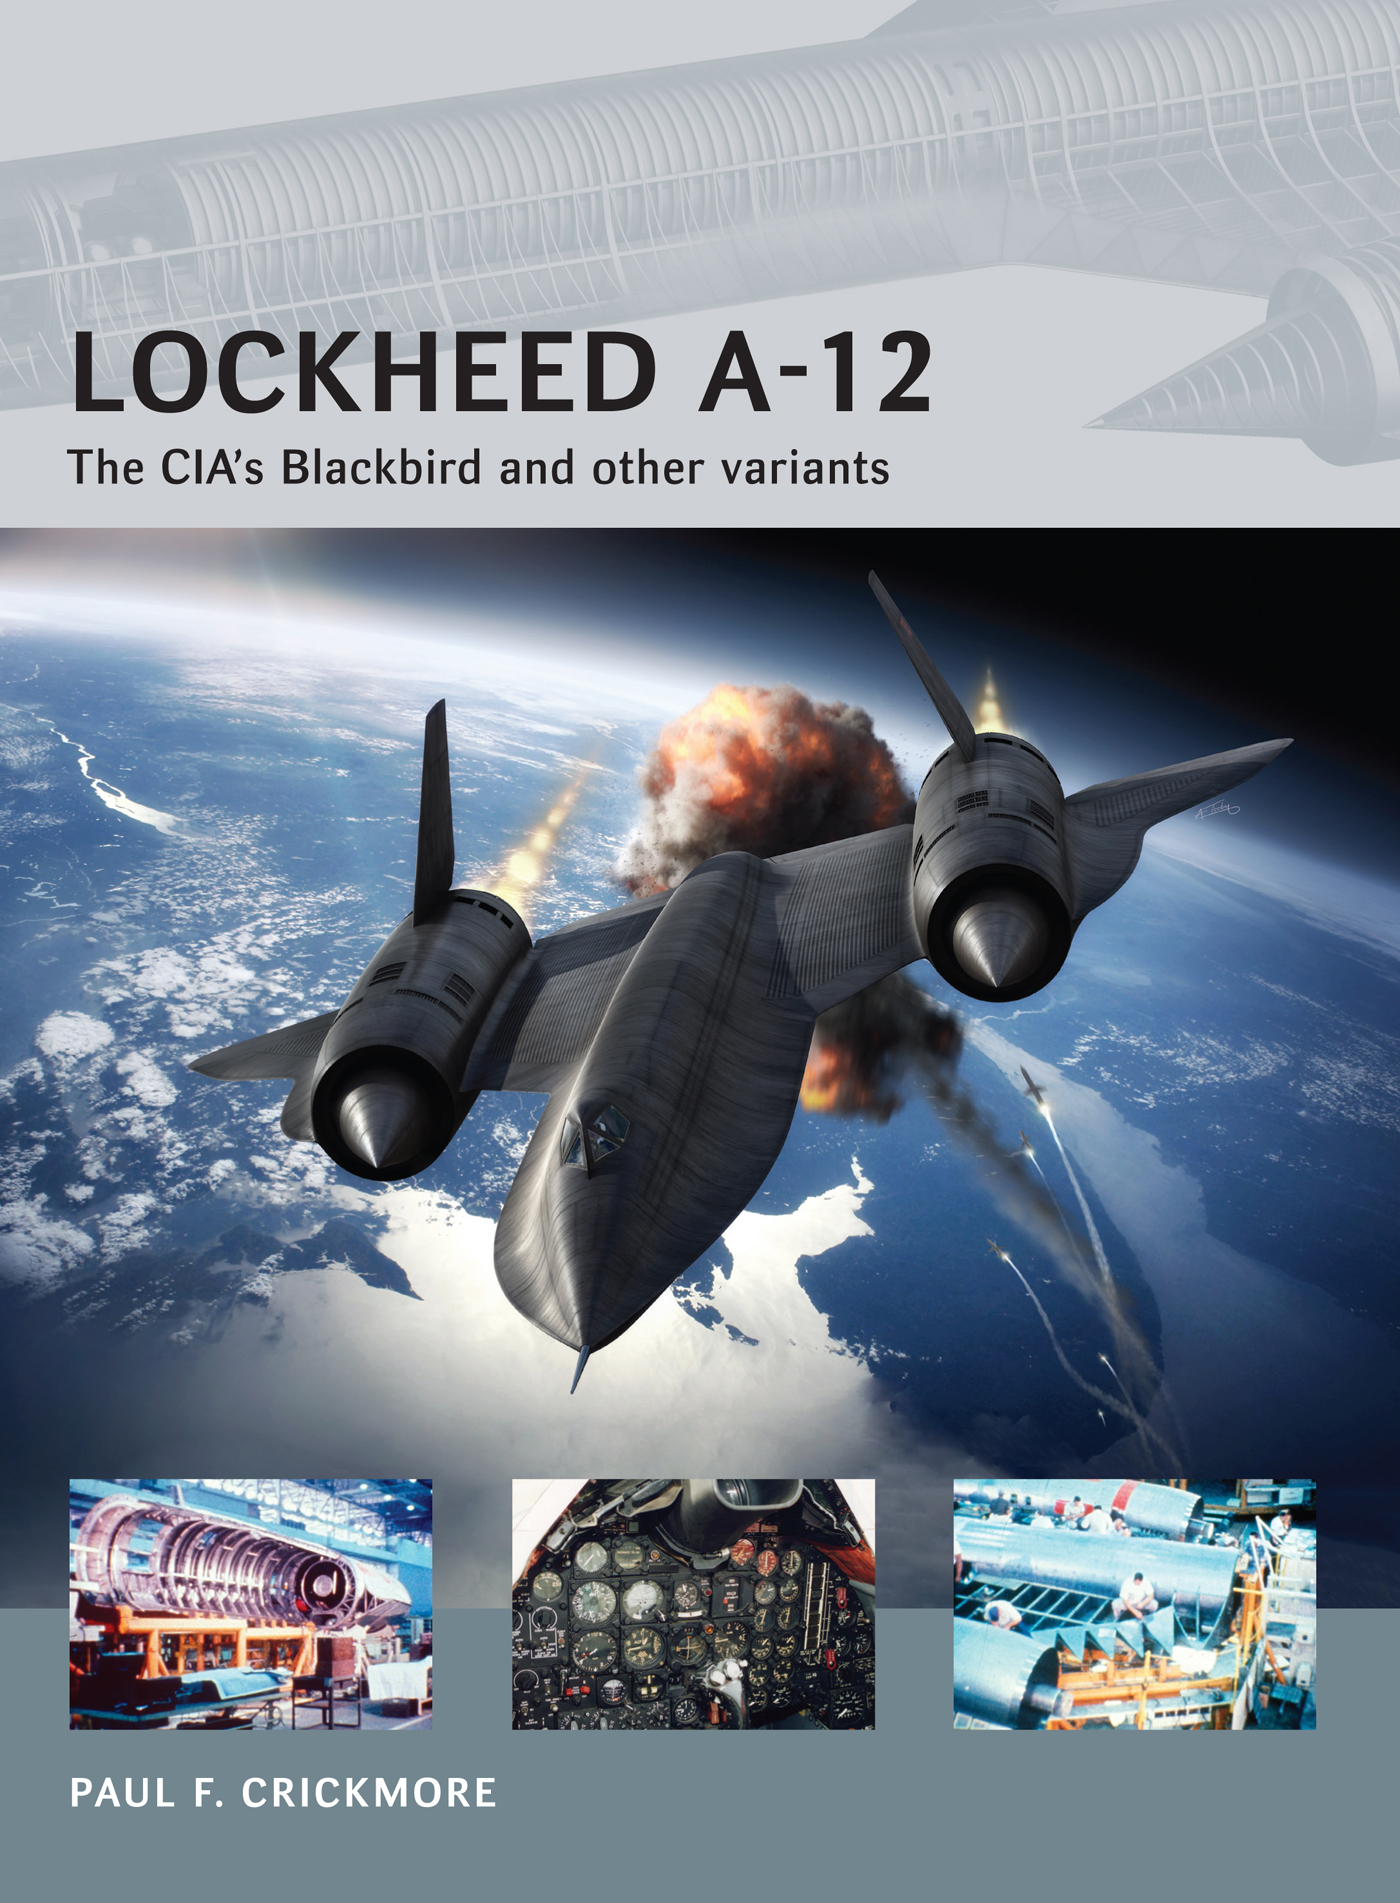 Lockheed A-12: The CIA's Blackbird and other variants